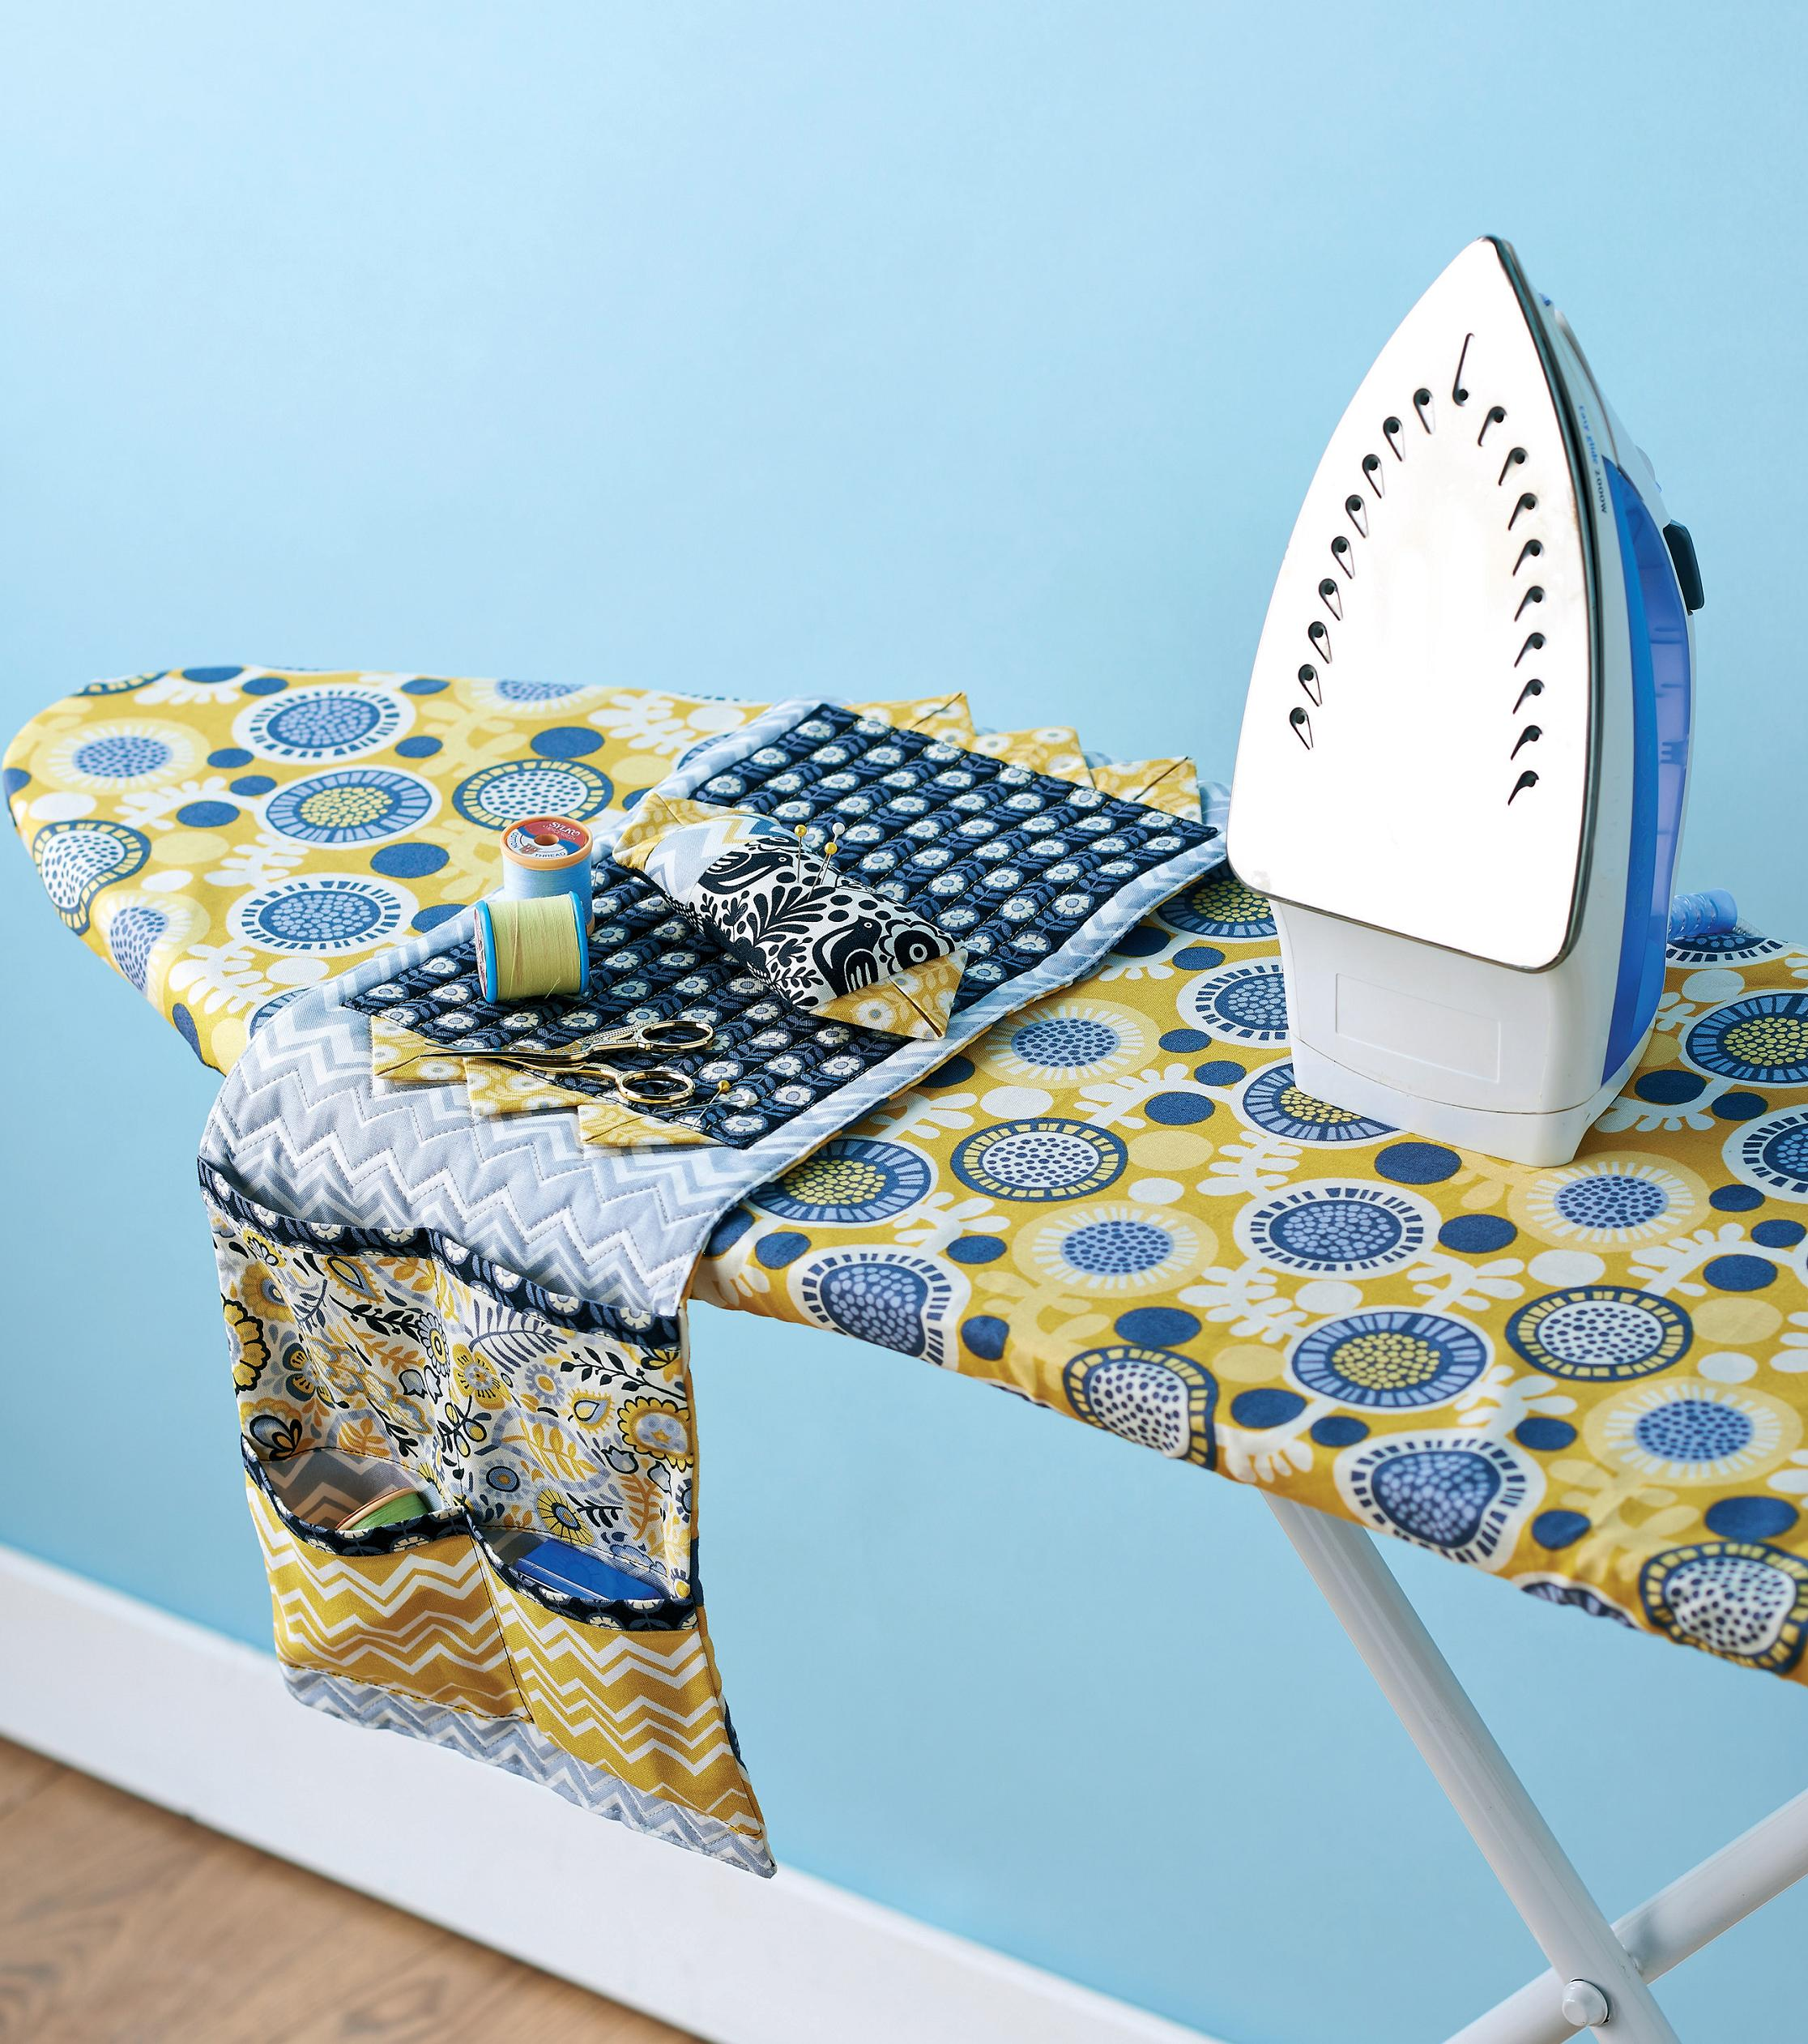 ironing board pattern go